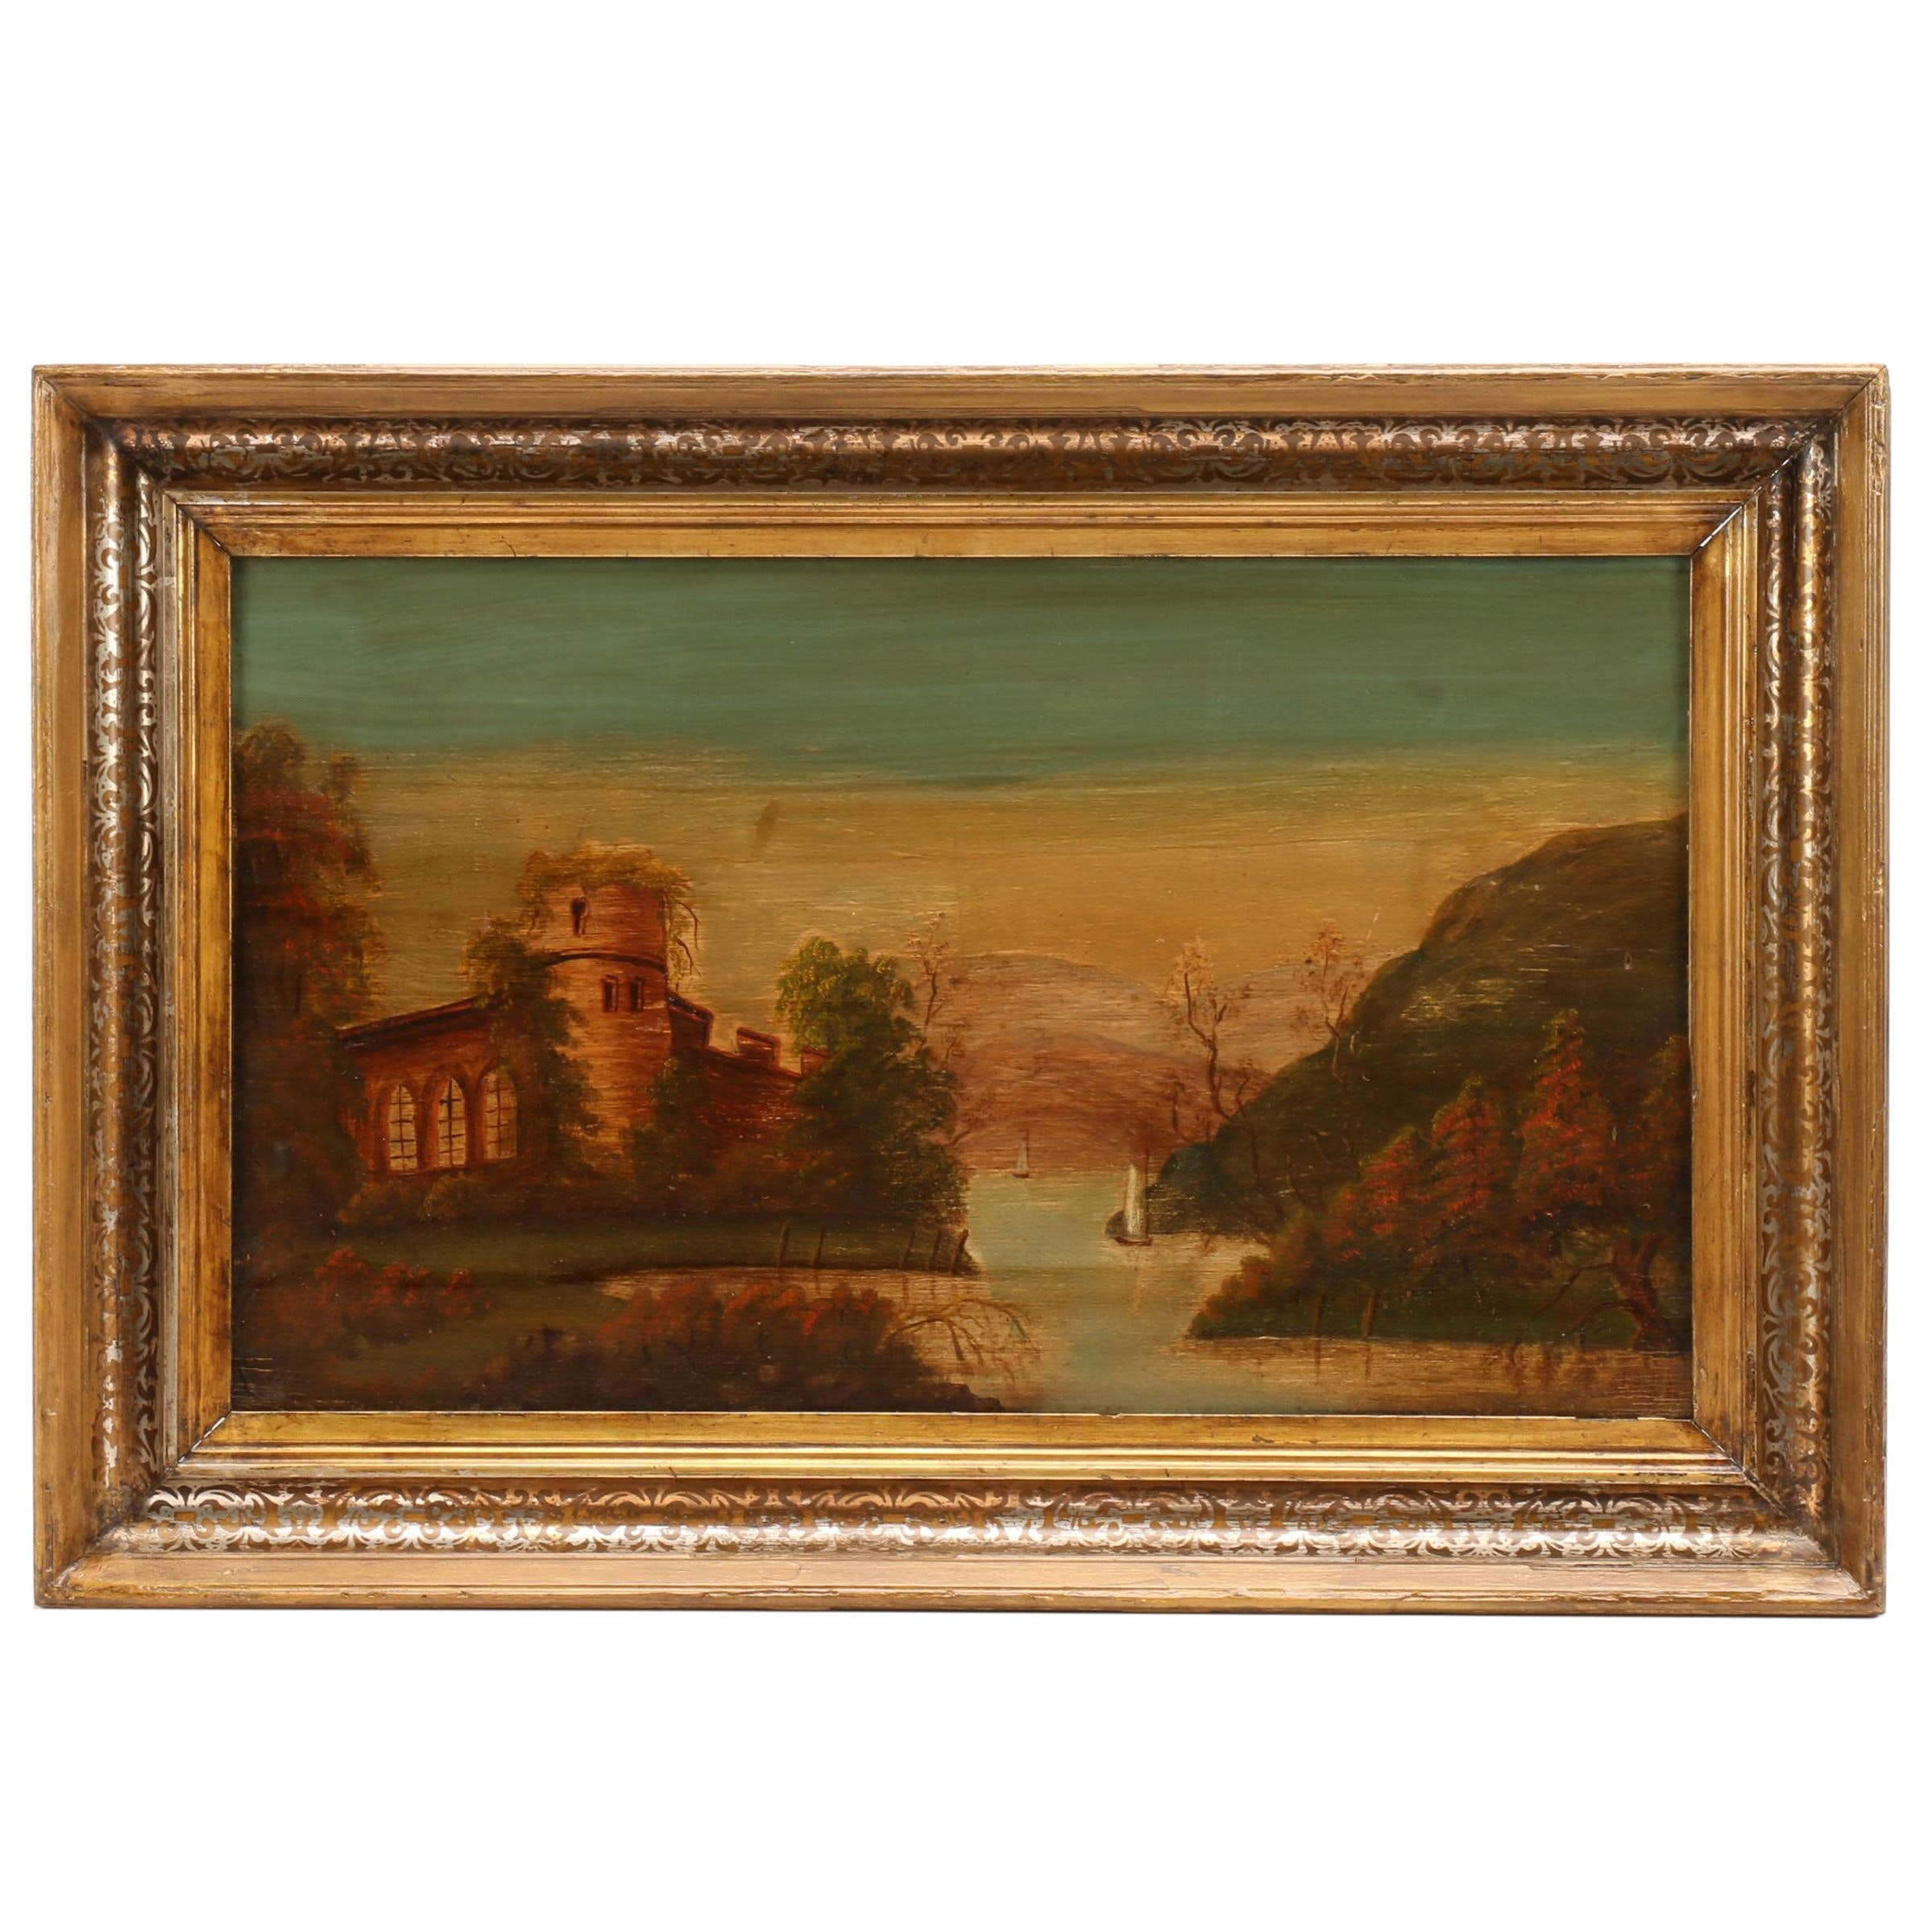 Early 20th Century European Landscape Oil Painting